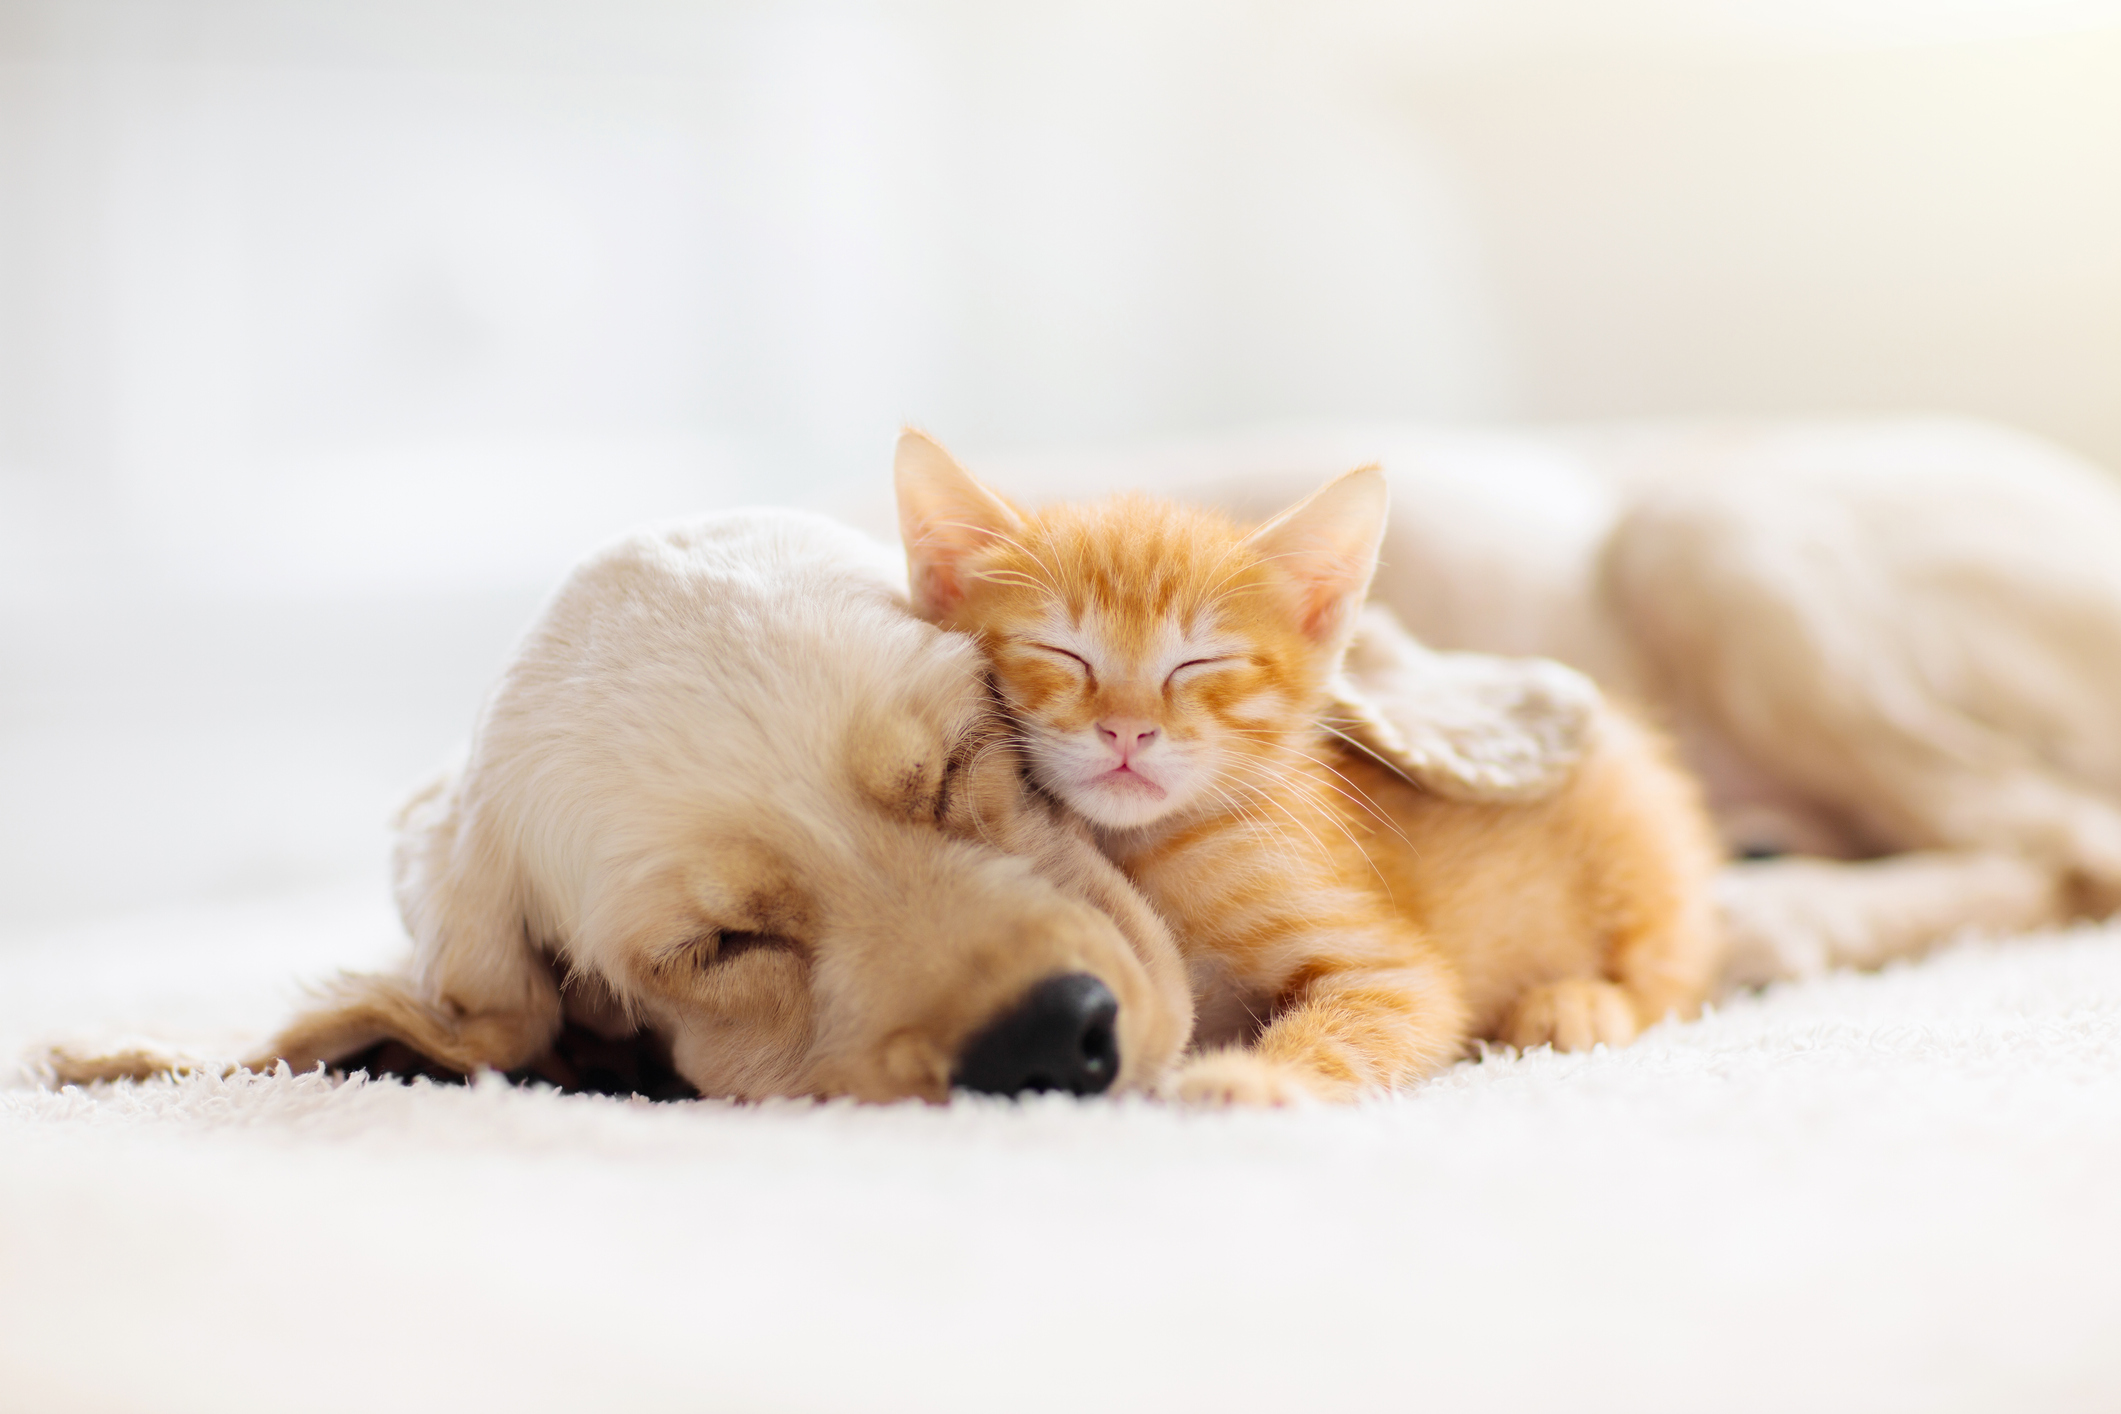 Cat and dog sleeping together. Kitten and puppy taking nap. Home pets. Animal care. Love and friendship. Domestic animals.